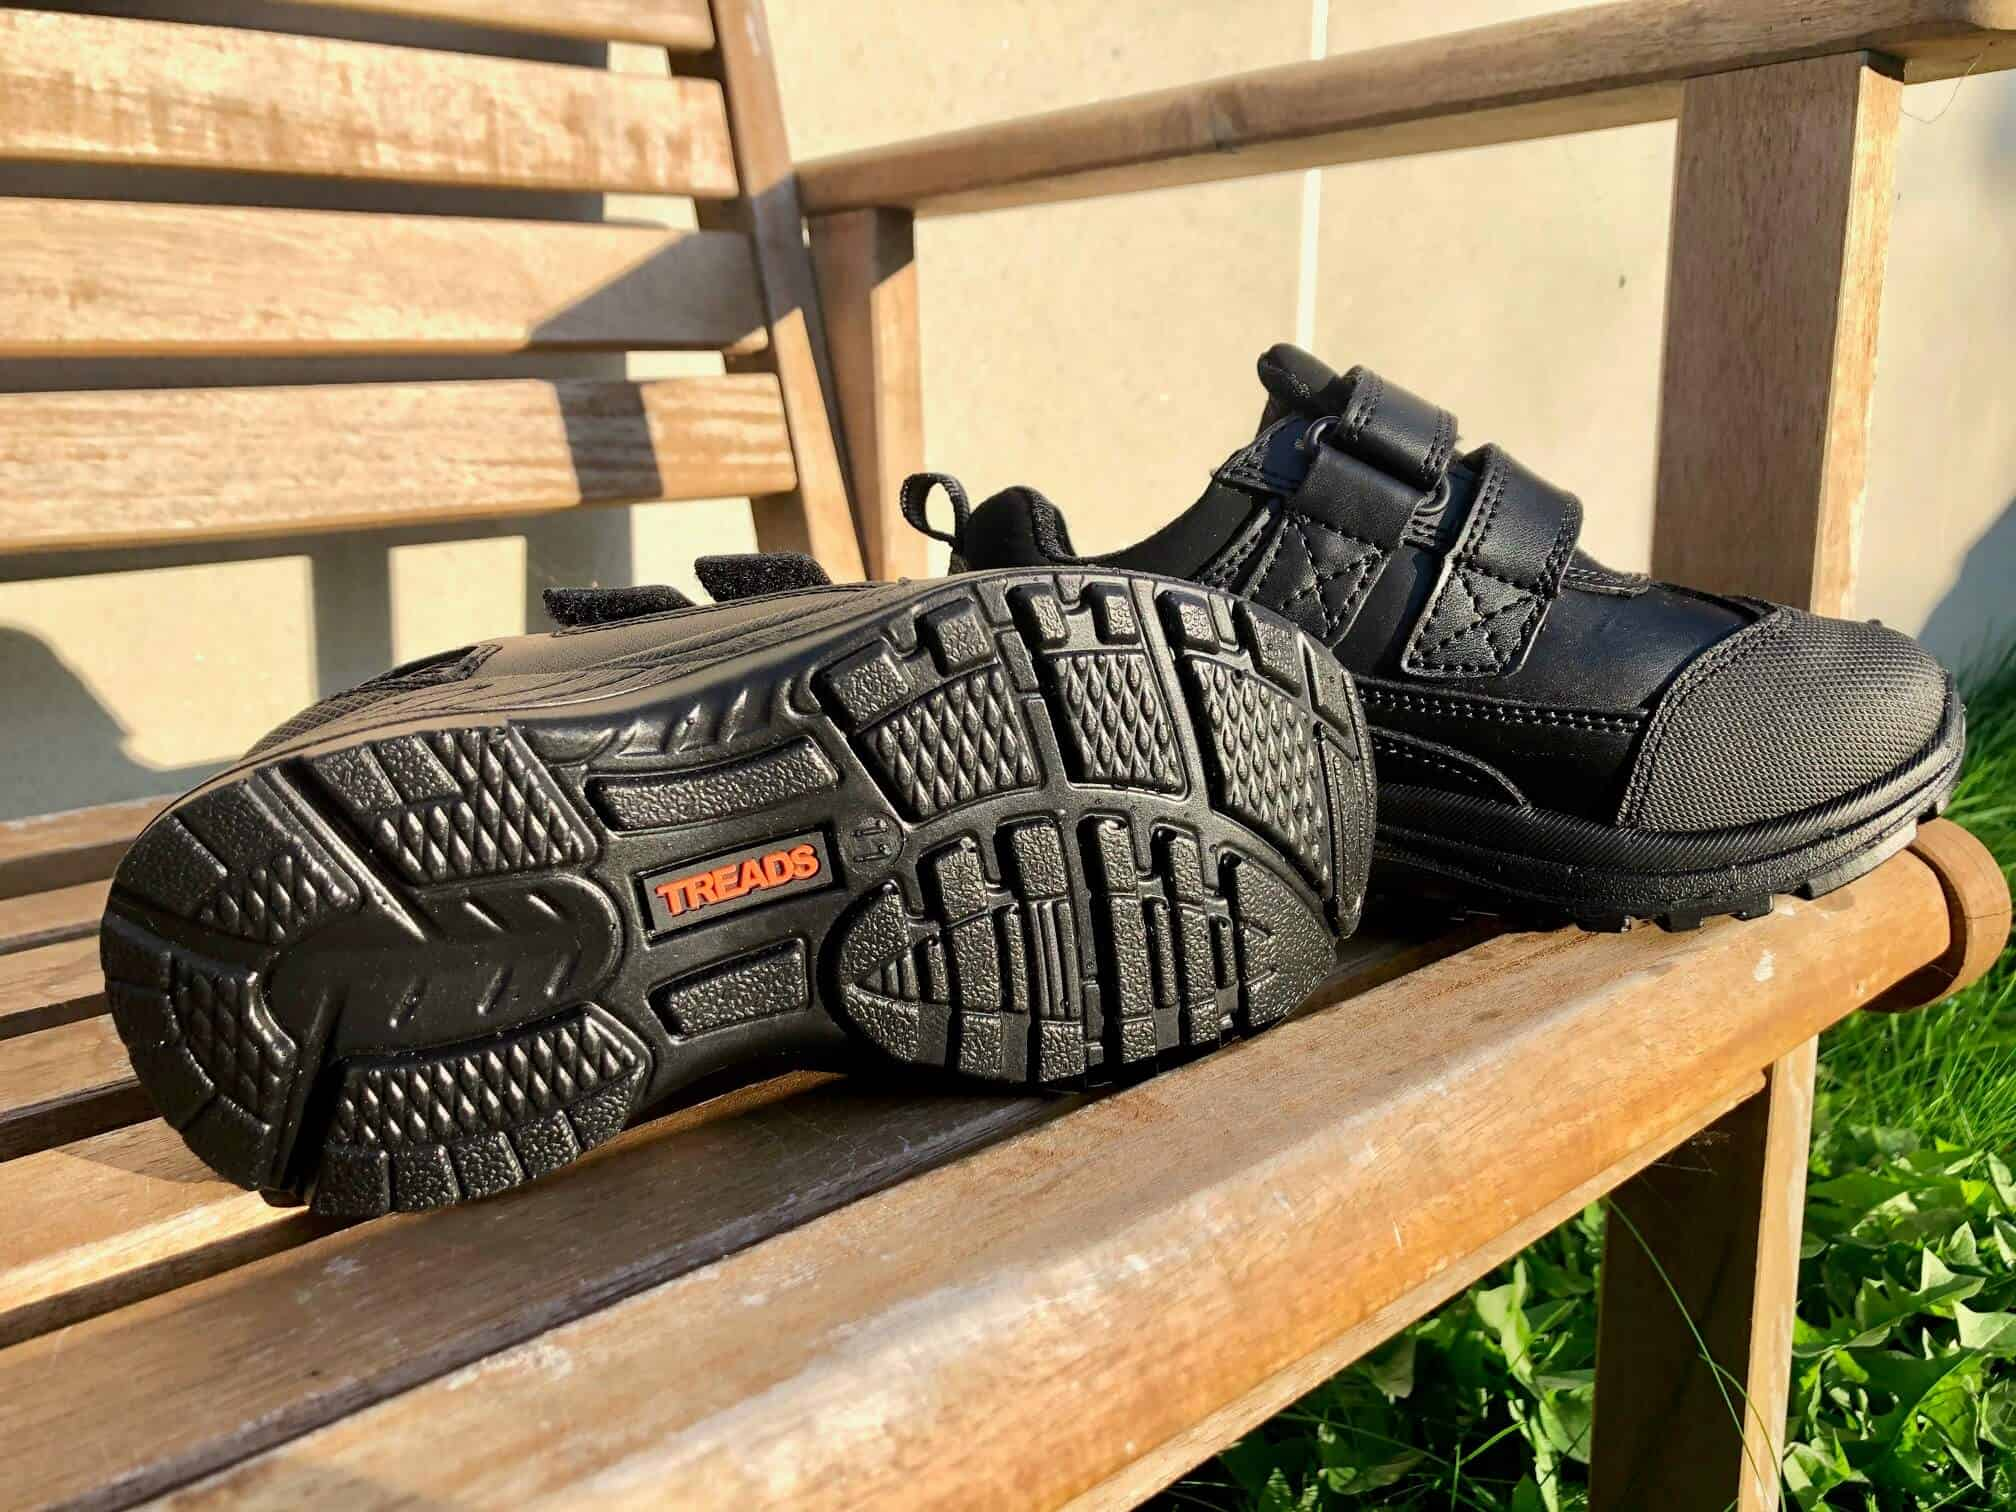 Treads School Shoes Review and Giveaway